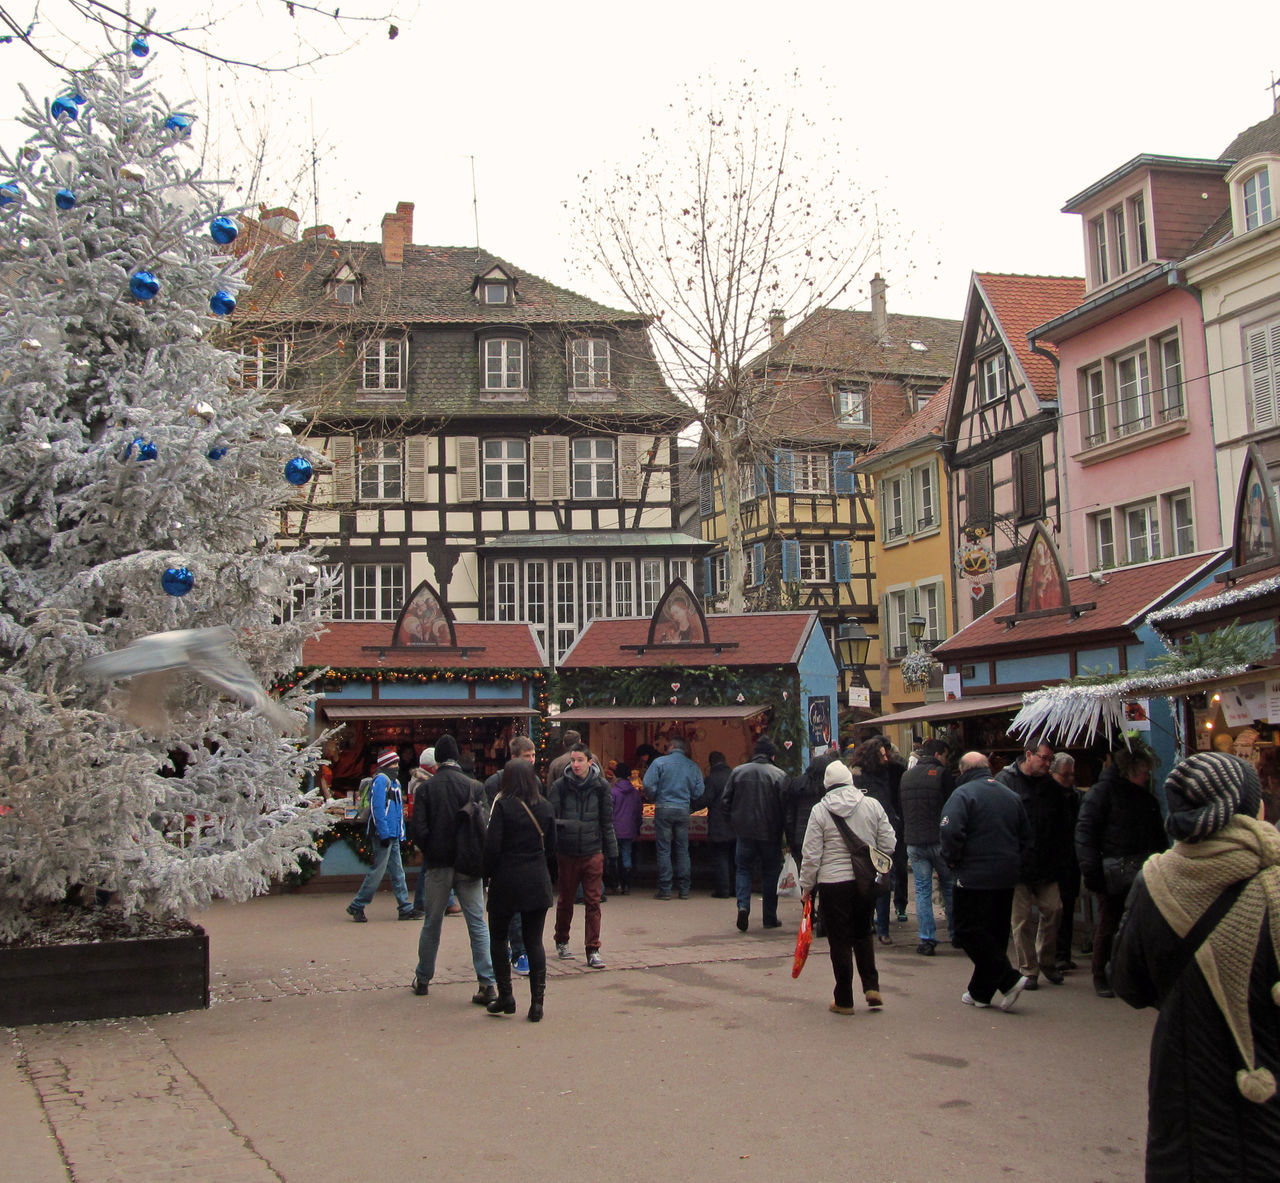 Christmas Decorations Christmas Lights Christmas Market Colmar Colmar, Alsace, France Day Market Outdoors People People Shopping Shopping Time Timber Framed Houses Town